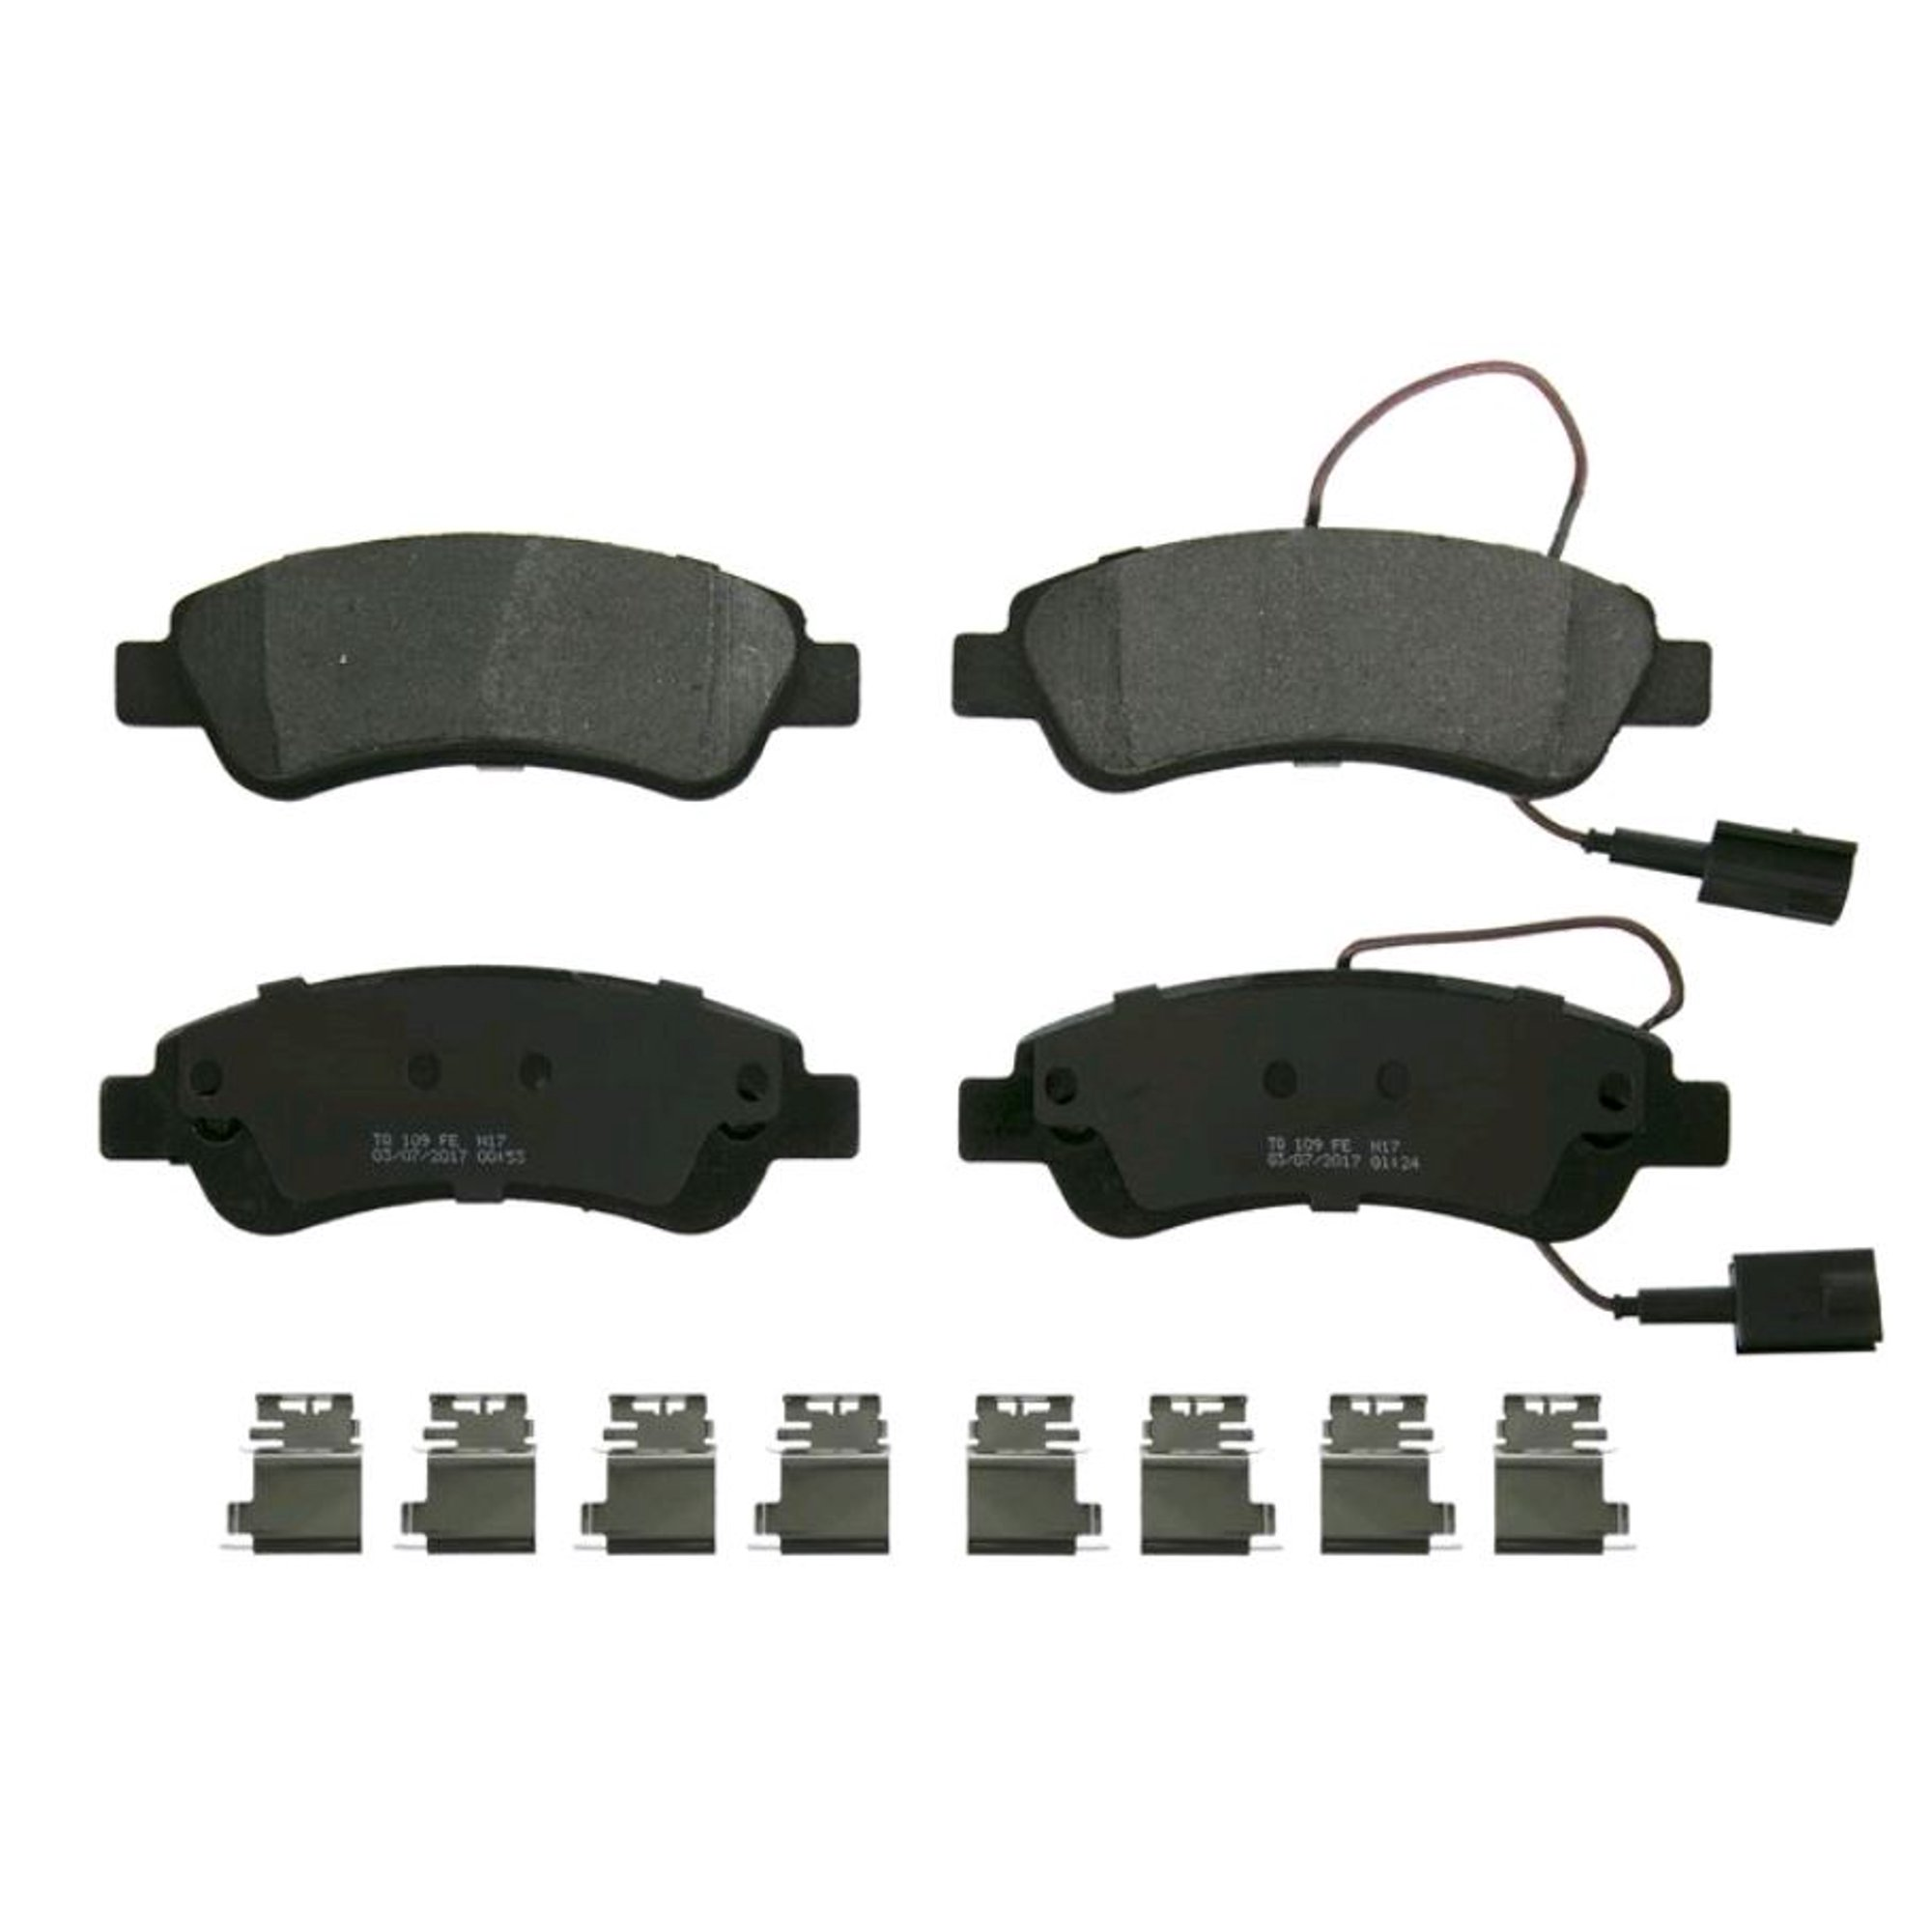 Wagner Brakes SX1490 Brake Pad Severe Duty OE Replacement